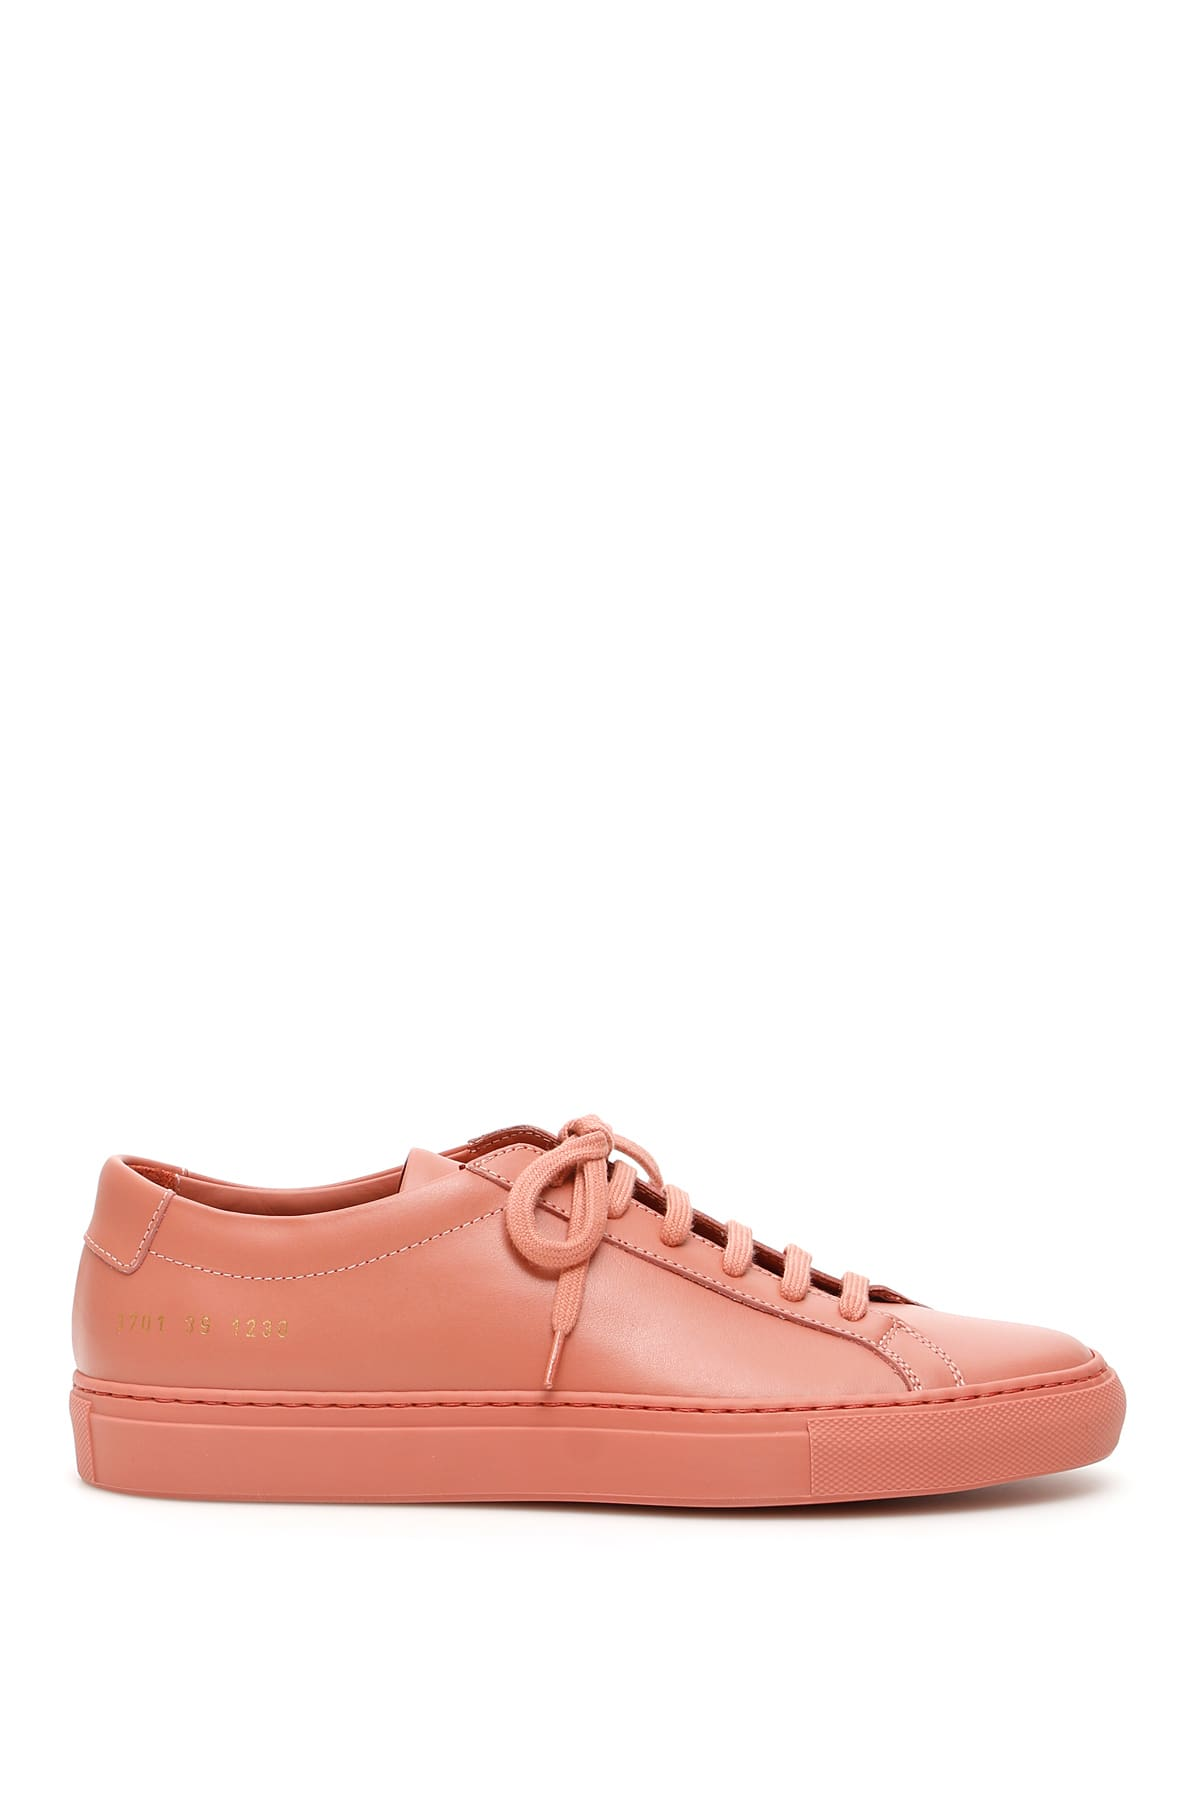 COMMON PROJECTS ORIGINAL ACHILLES SNEAKERS 39 Pink Leather